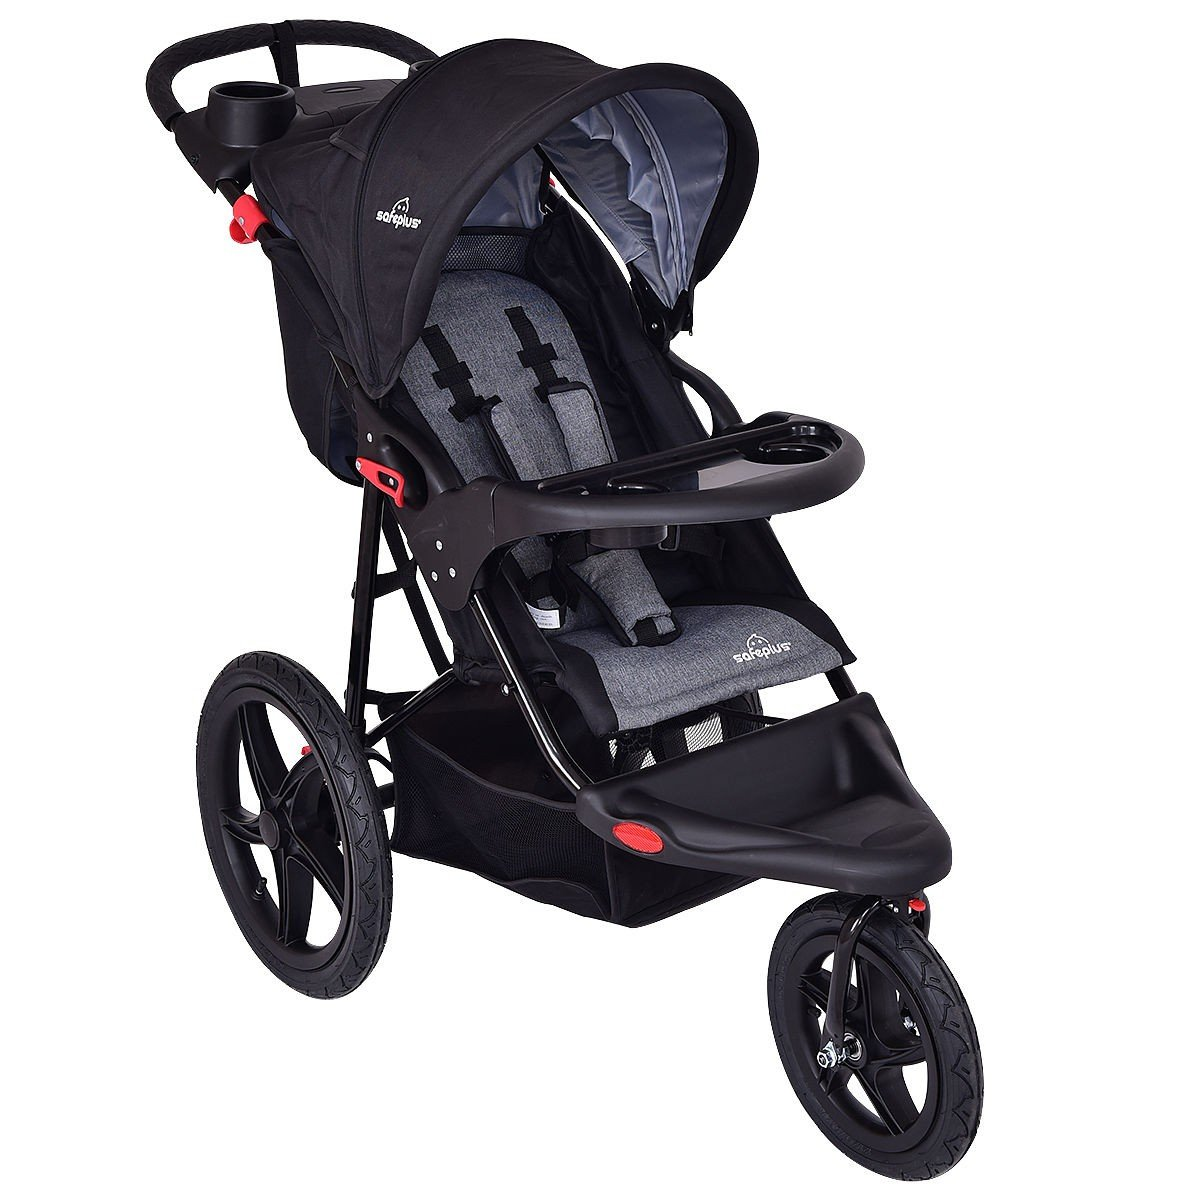 Baby Stroller Jogger LIGHTWEIGHT (22 lbs) Foldable, Umbrella Cover, For Infants, Toddlers And Kids, Black Color